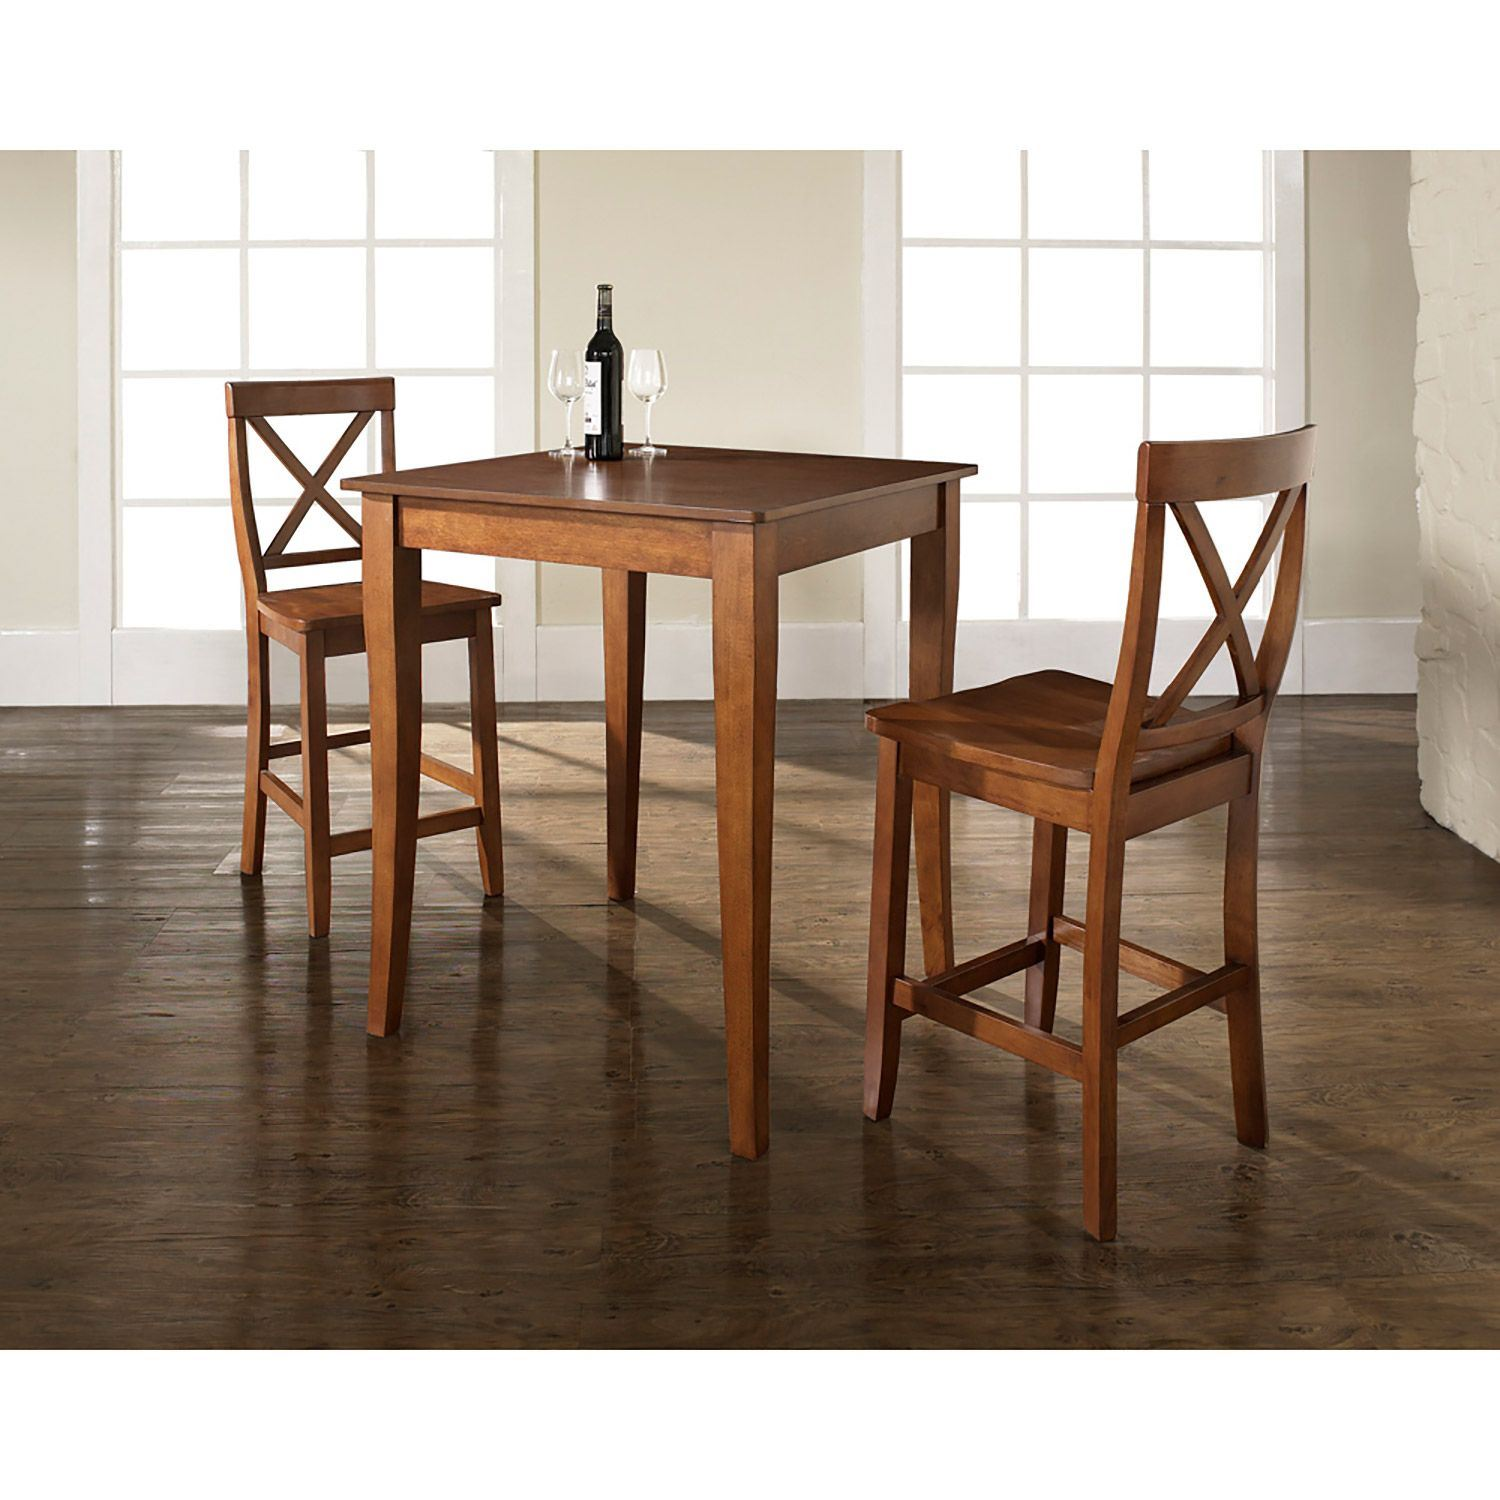 3 Piece Pub Dining Set Cherry D Kd320001ch Crosley